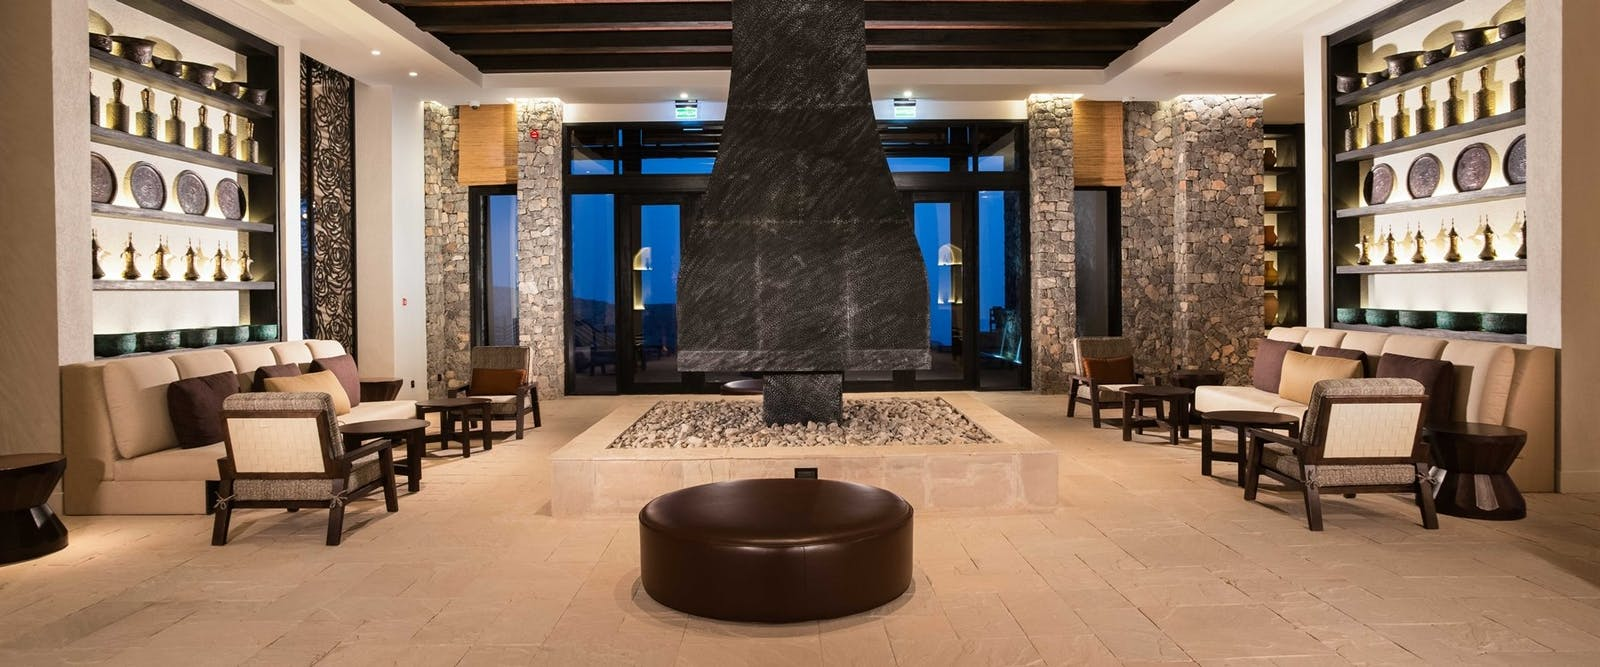 Interior Lobby at Alila Jabal Akhdar